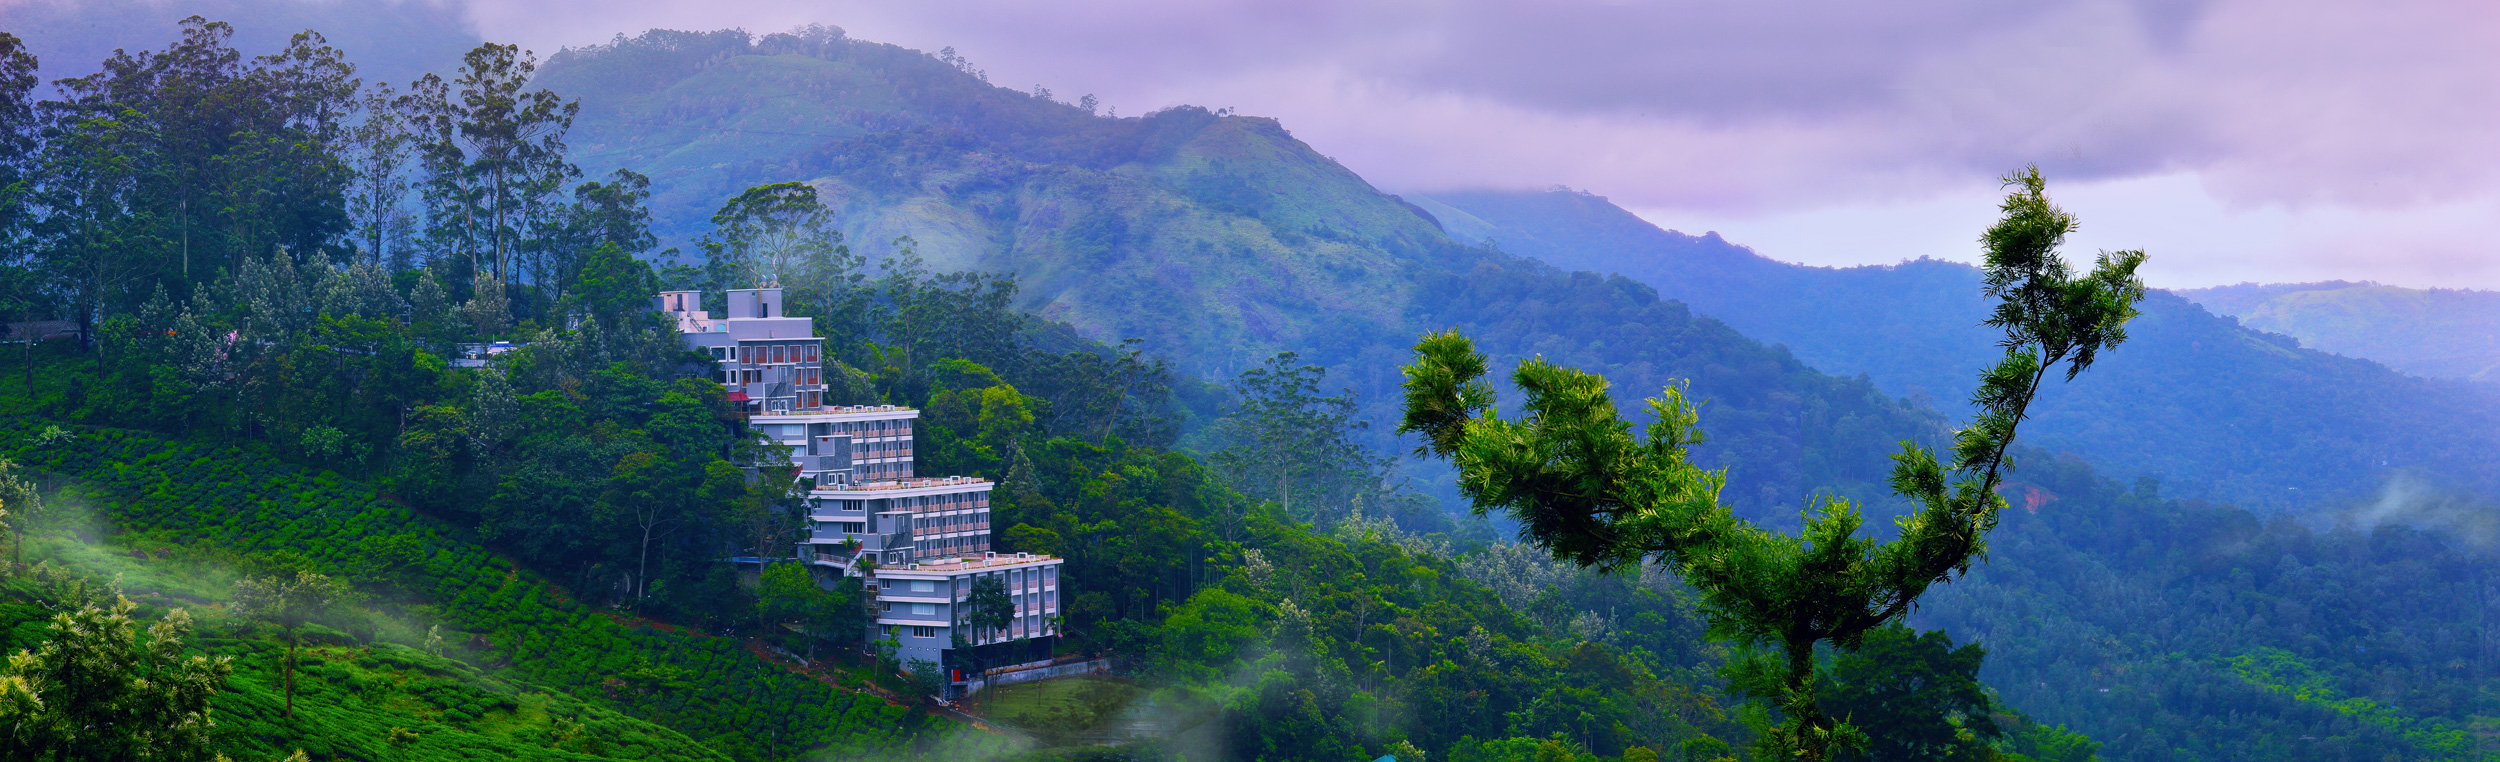 CHANDY WINDY WOODS MUNNAR  Image